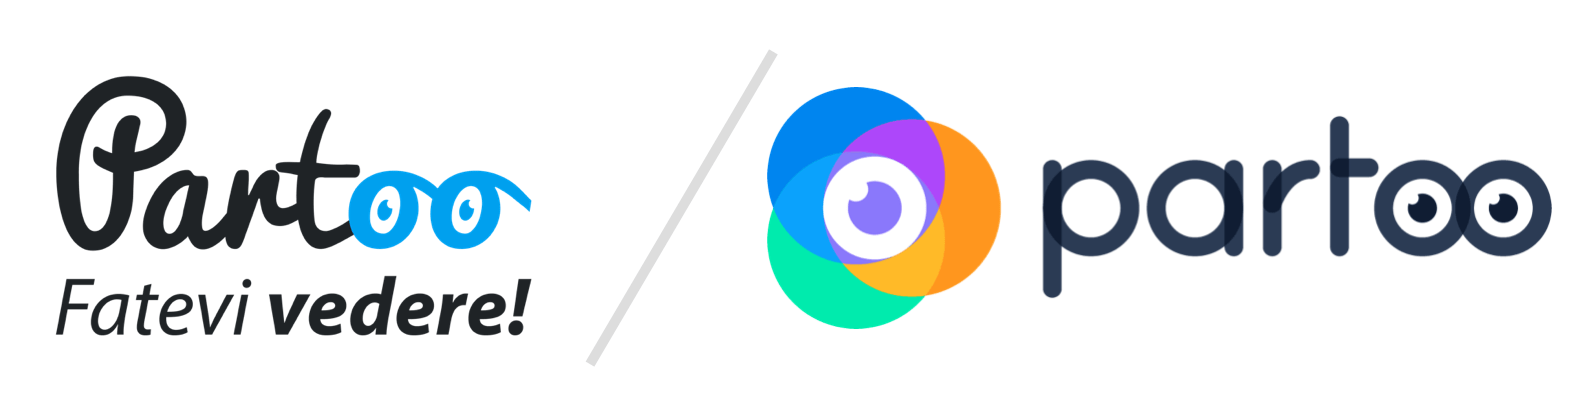 before after partoo logo